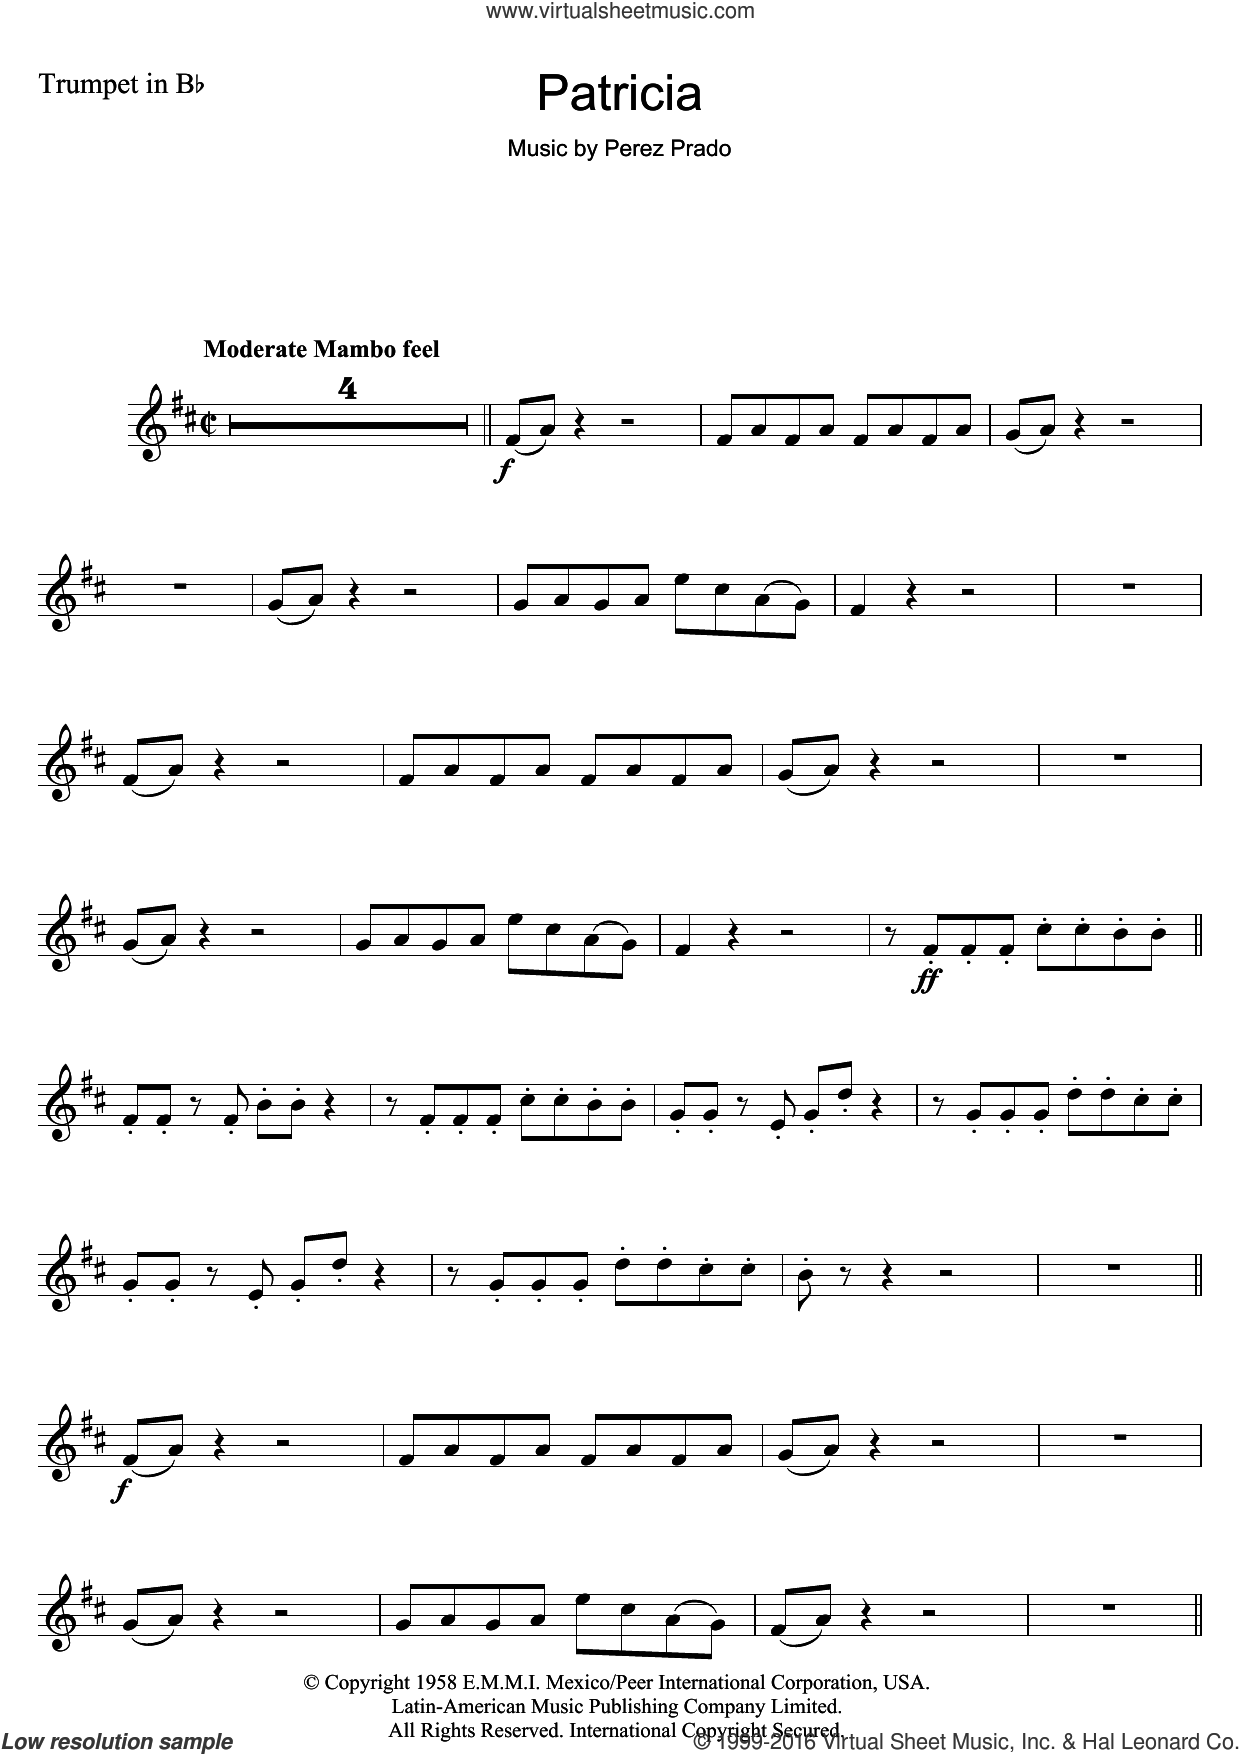 Patricia sheet music for trumpet solo by Perez Prado, intermediate